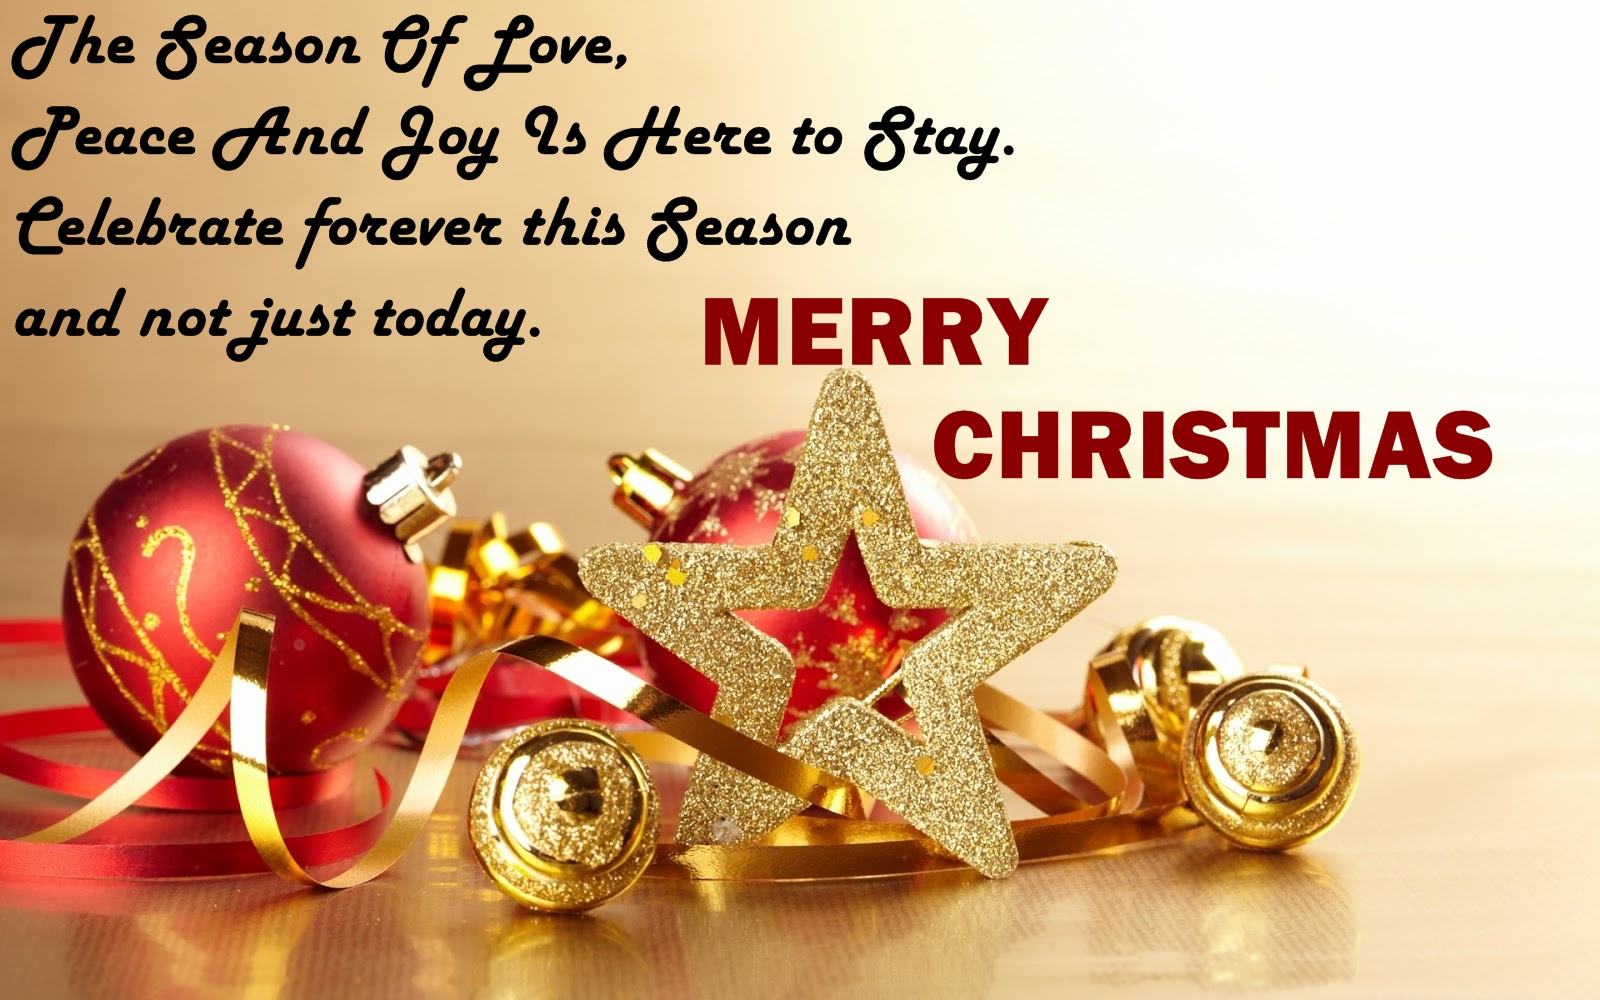 Supreme Greeting S Facebook Shower Blessings Season Greetings Messages Fb Greetings Friends Seasonal Greetings Messages inspiration Seasons Greetings Messages